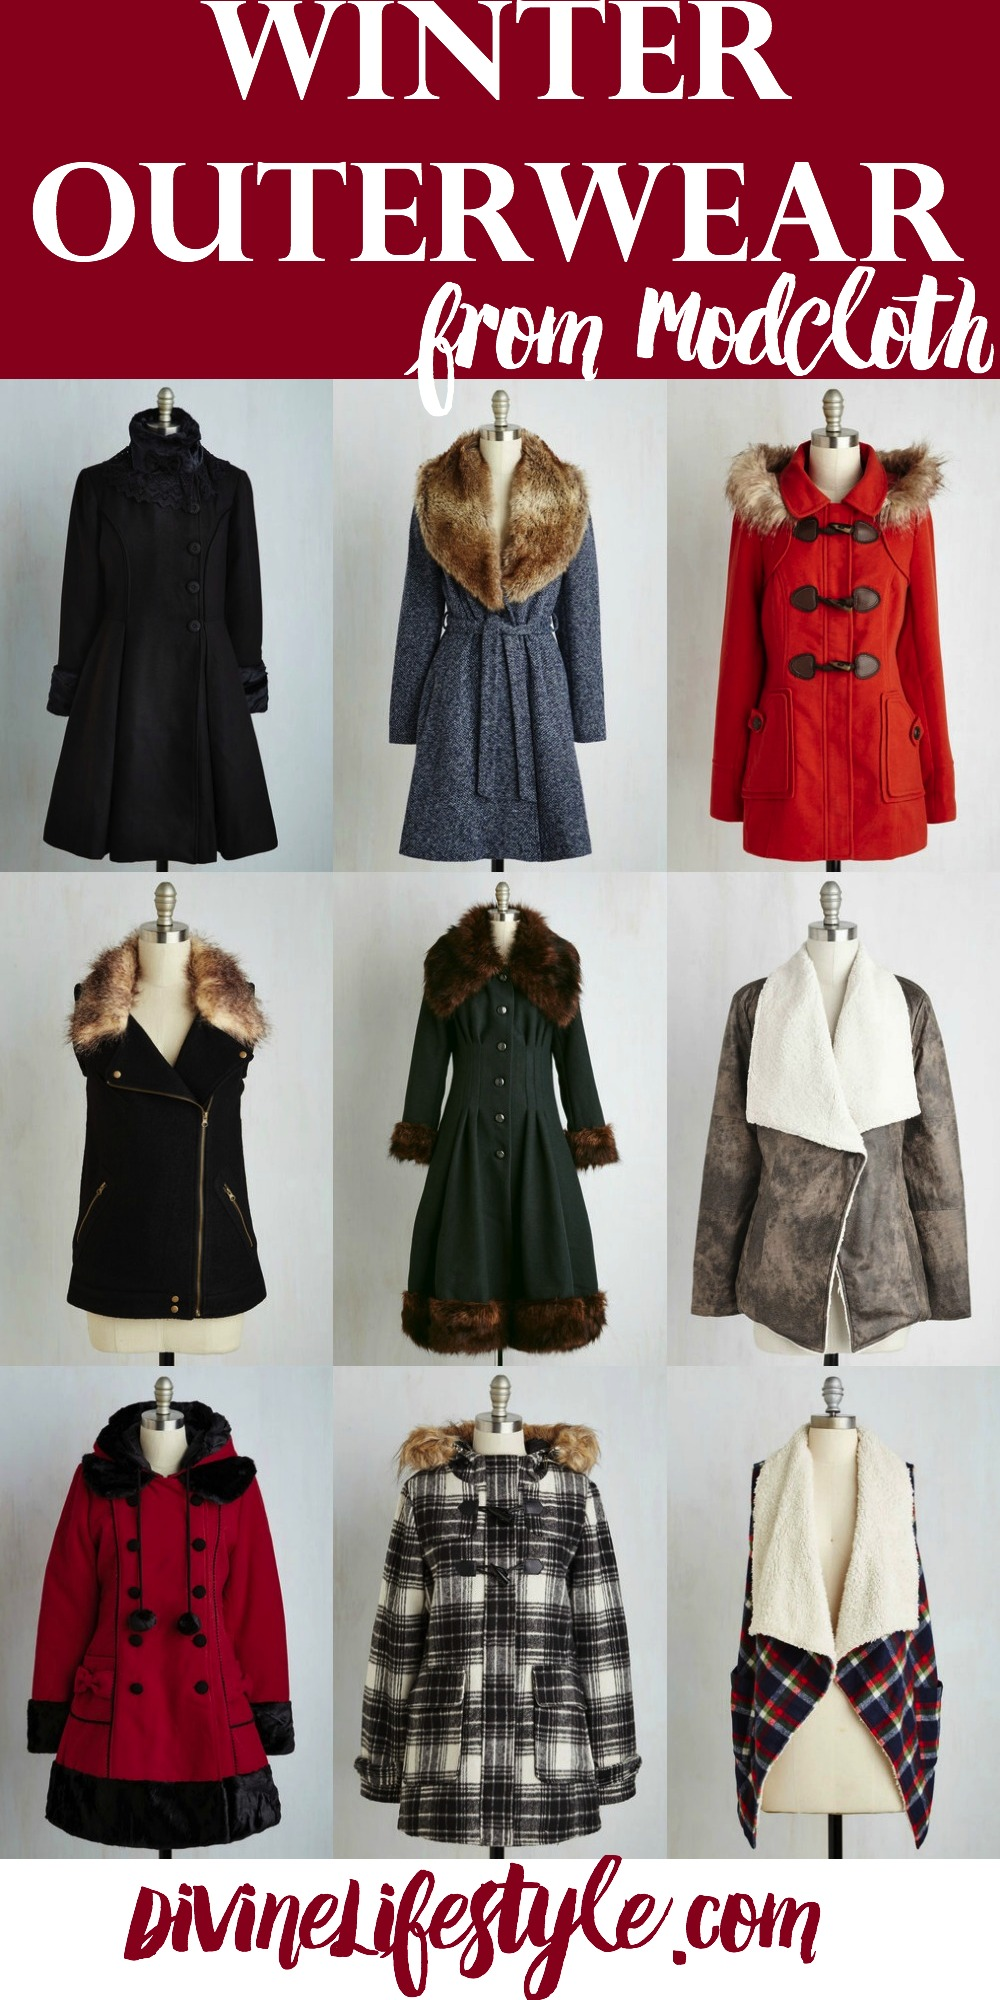 Chic and Stylish Winter Outerwear from ModCloth